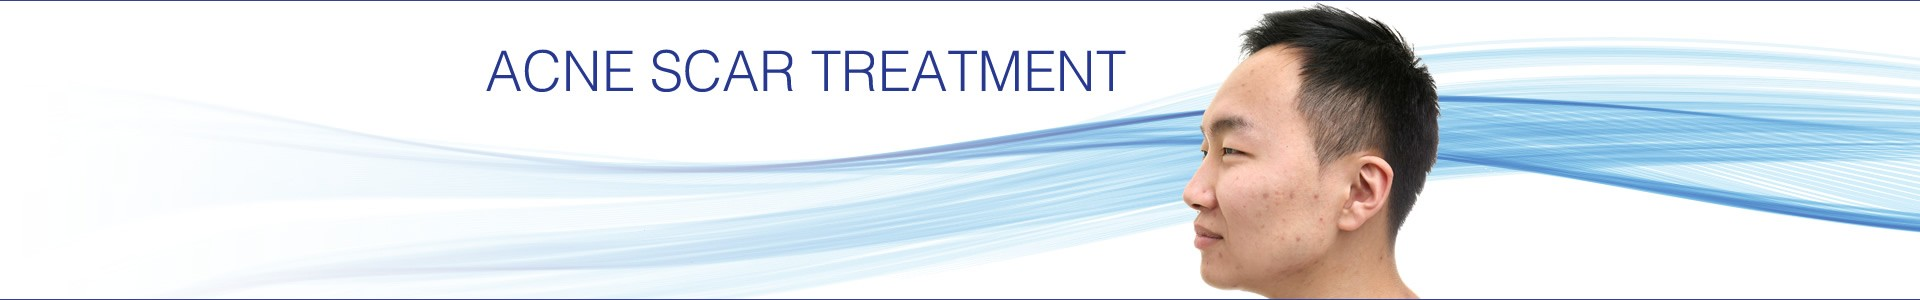 Acne Scar Treatment - Smooth Skin Health Centre Hamilton